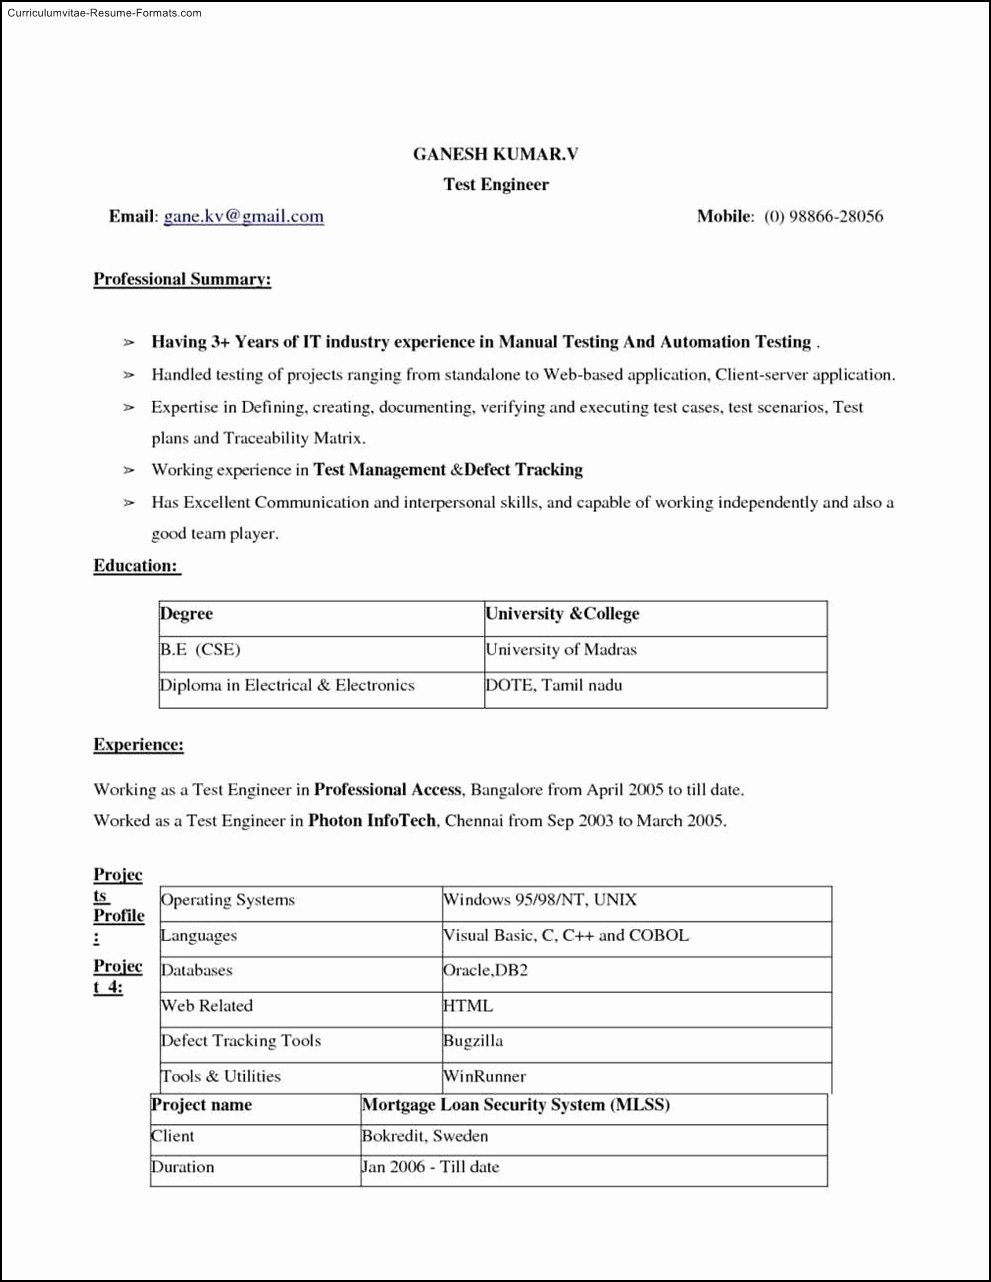 Resume Template Ms Word 2010 Lovely Ms Word 2010 Resume Templates Free Samples Examples